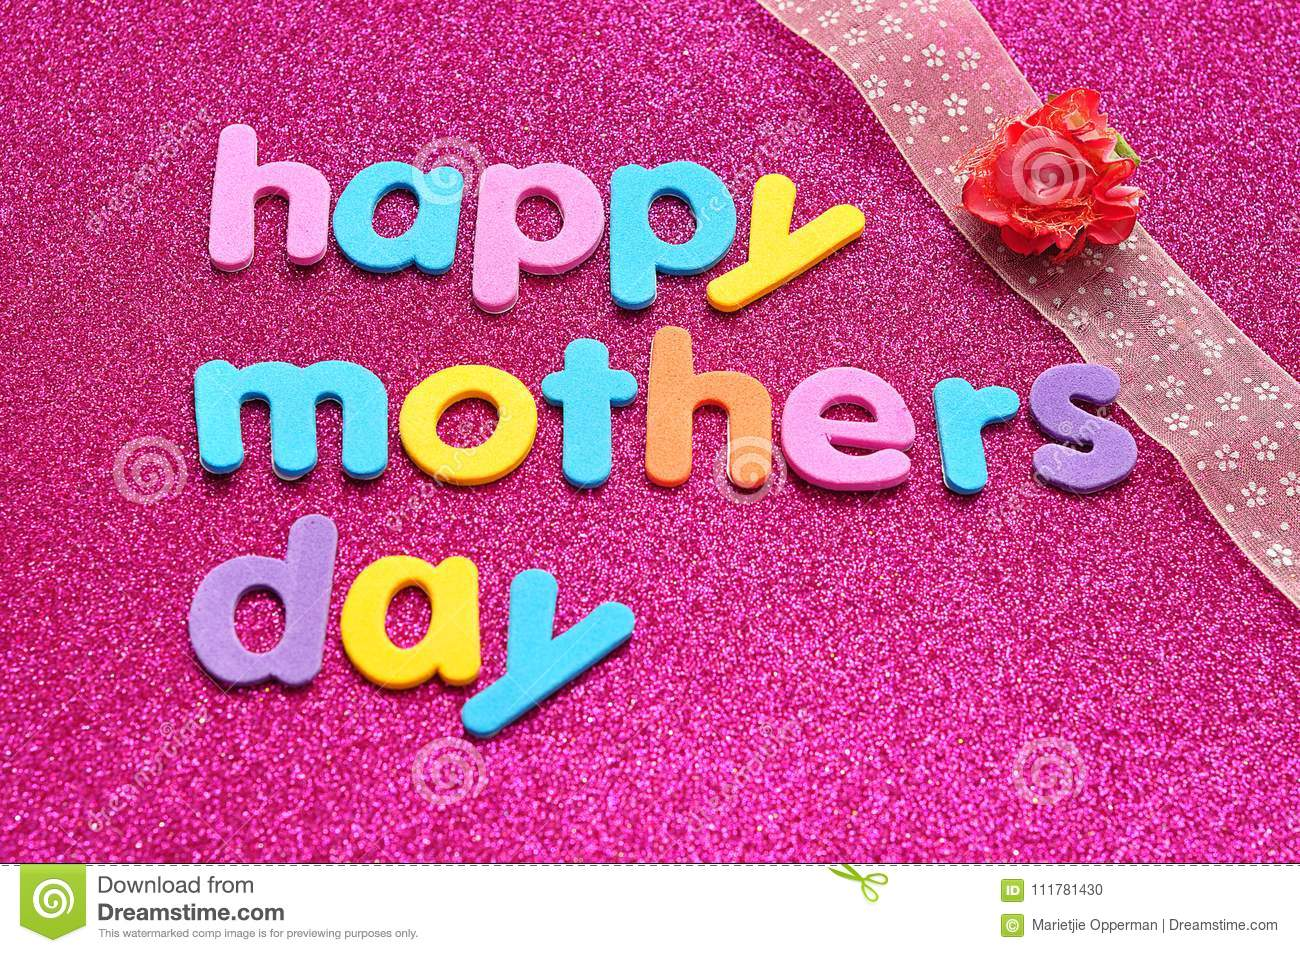 Happy mothers day on a pink background with a pink ribbon and an artificial rose